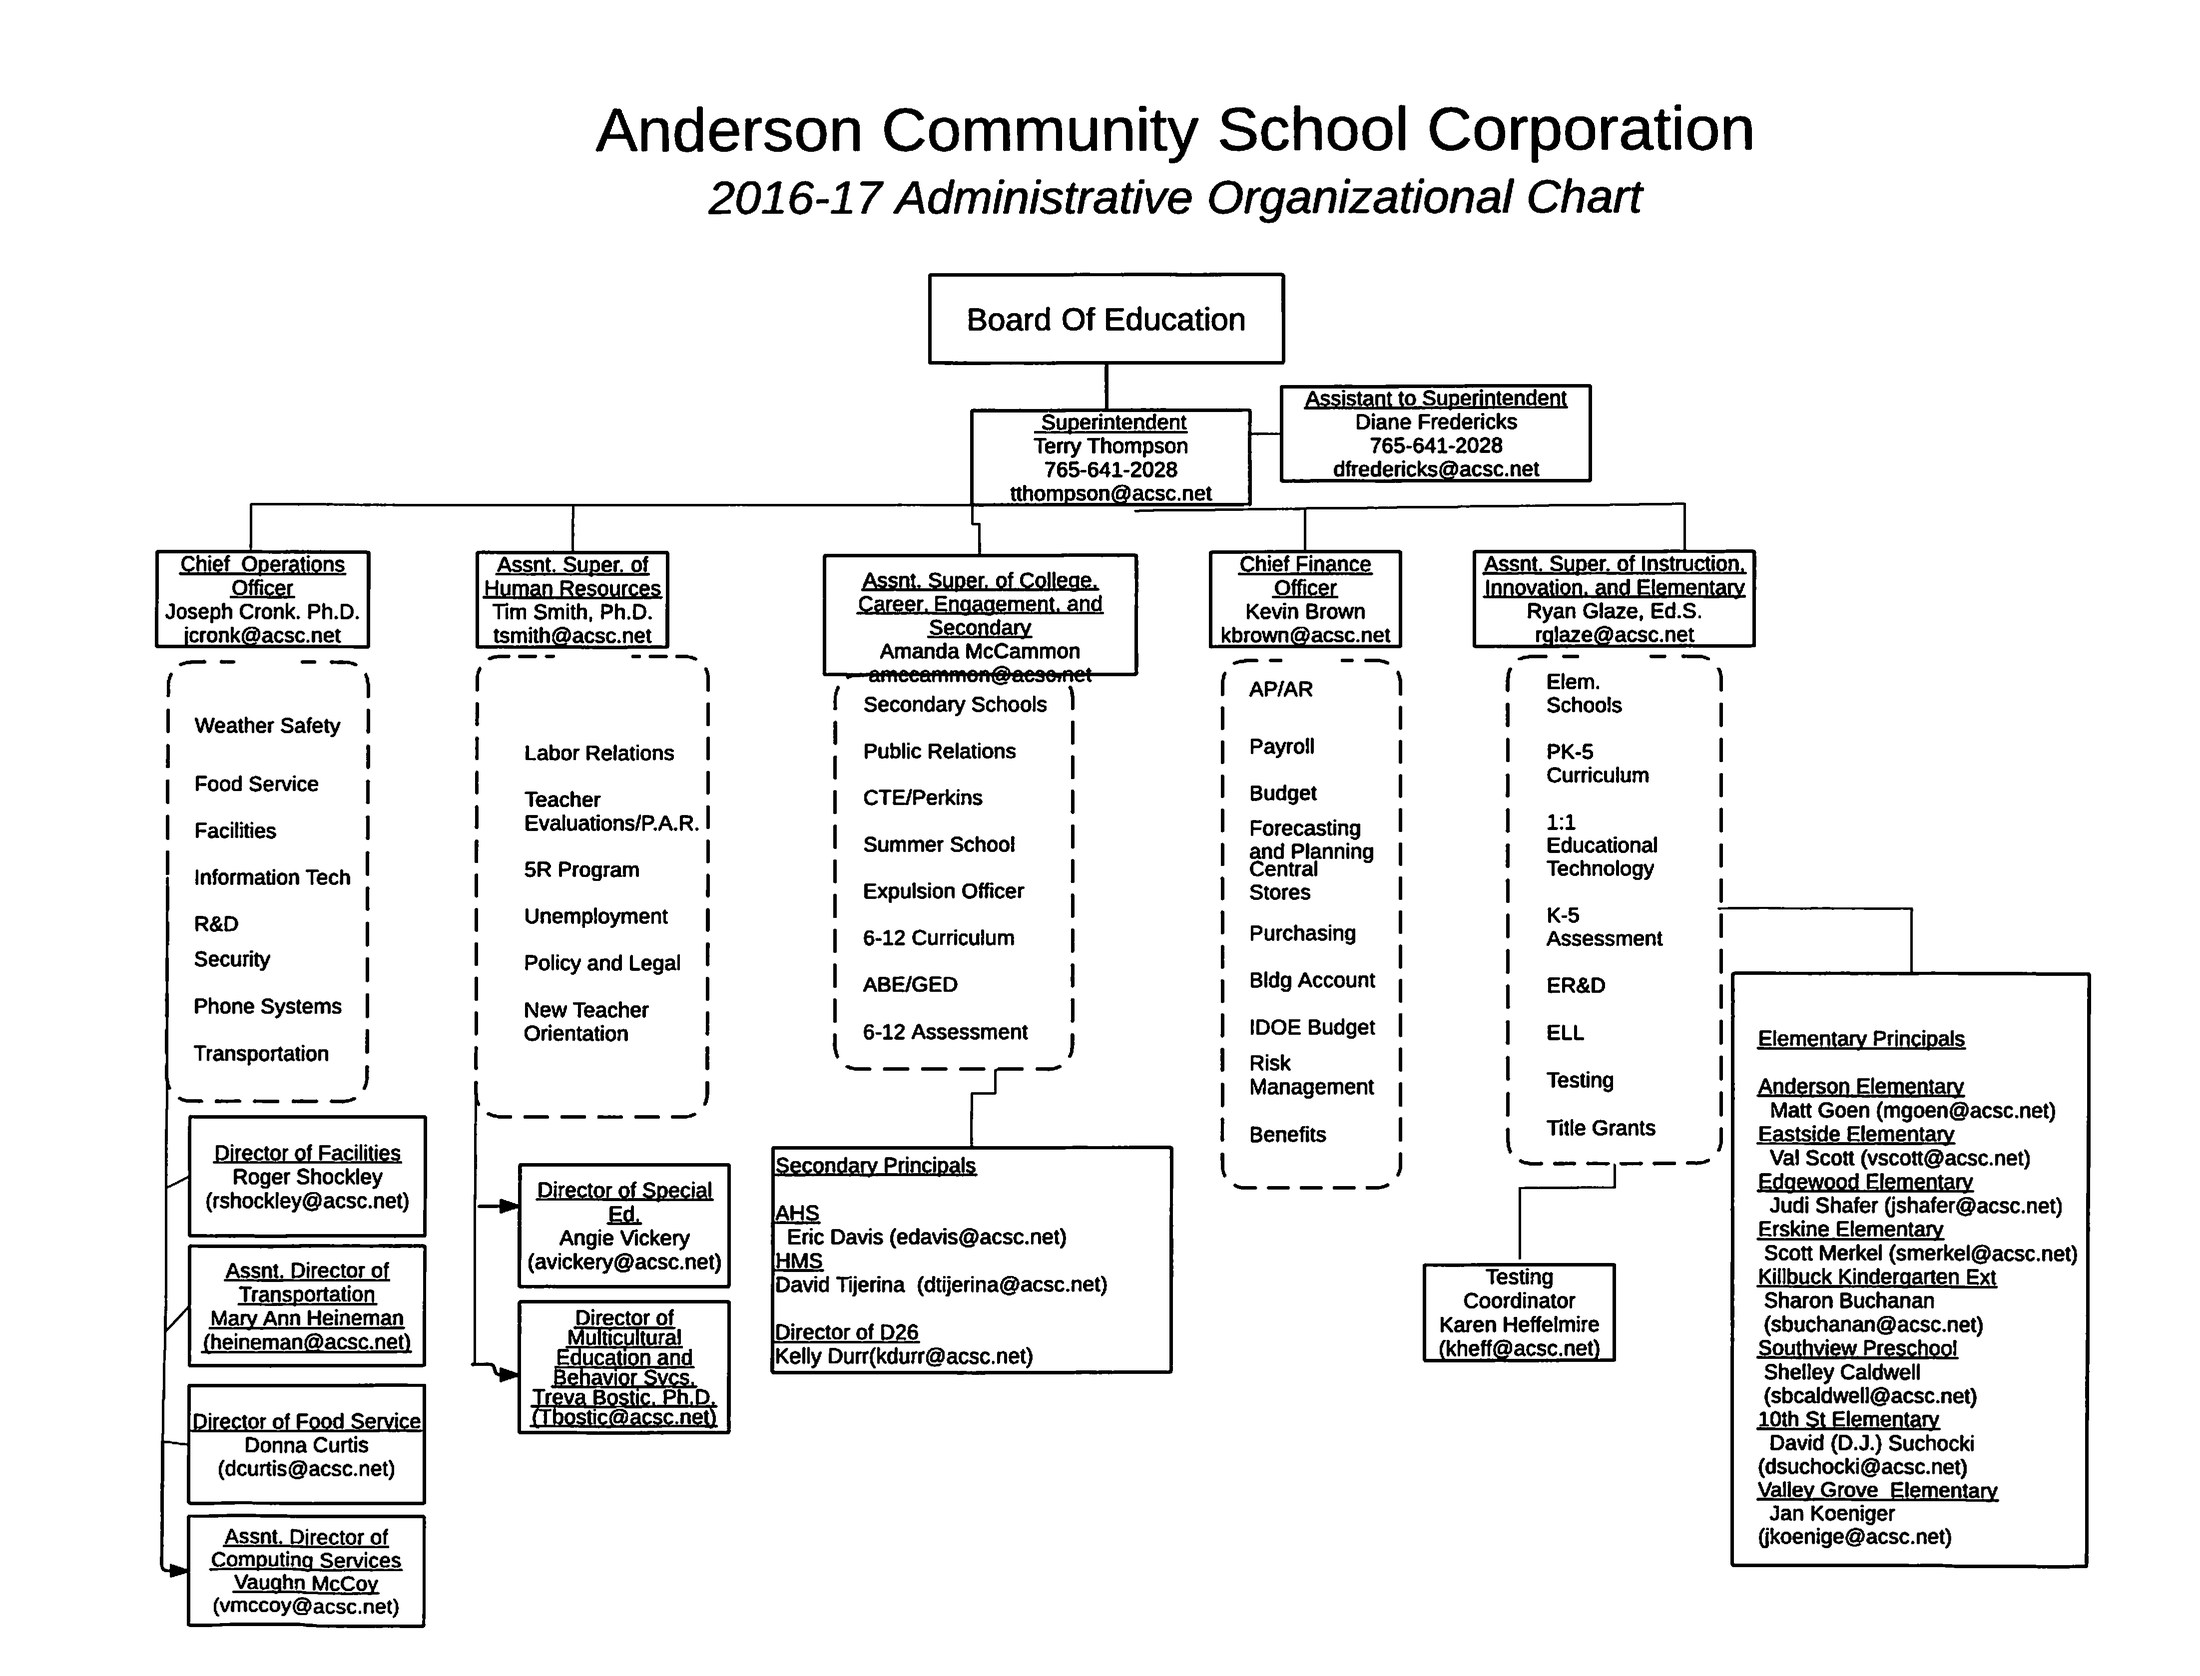 ACSC Administrator hierarchy chart